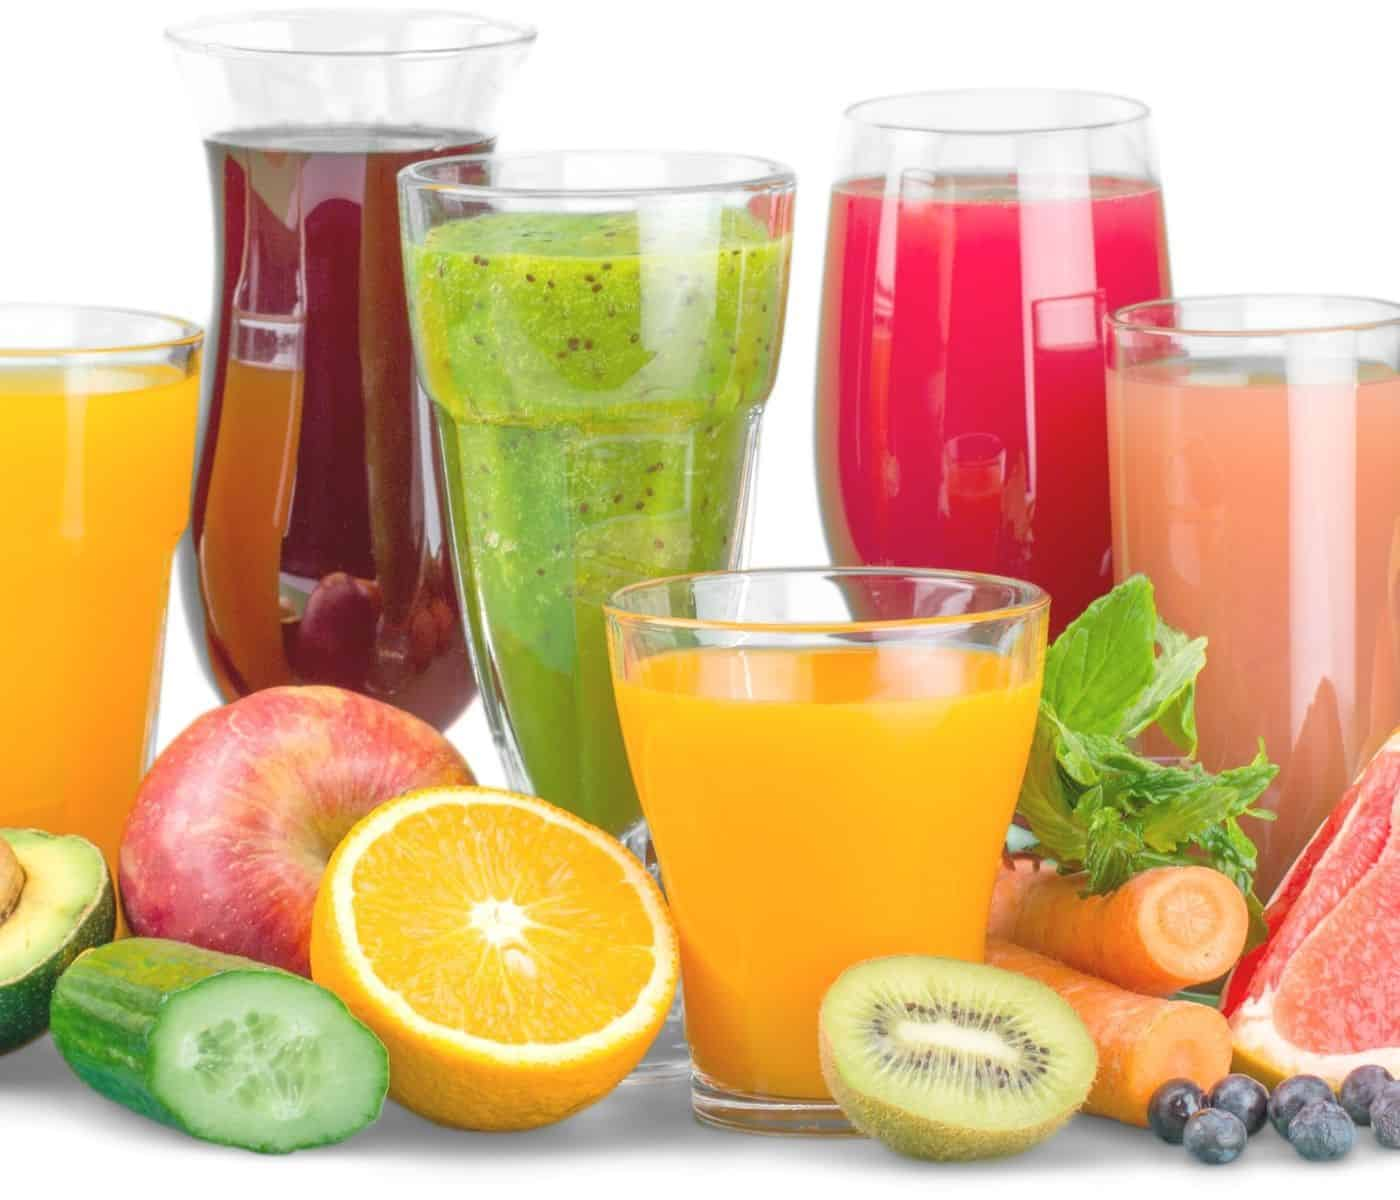 freshly squeezed juice with fruit and veggies from Farmbox direct.